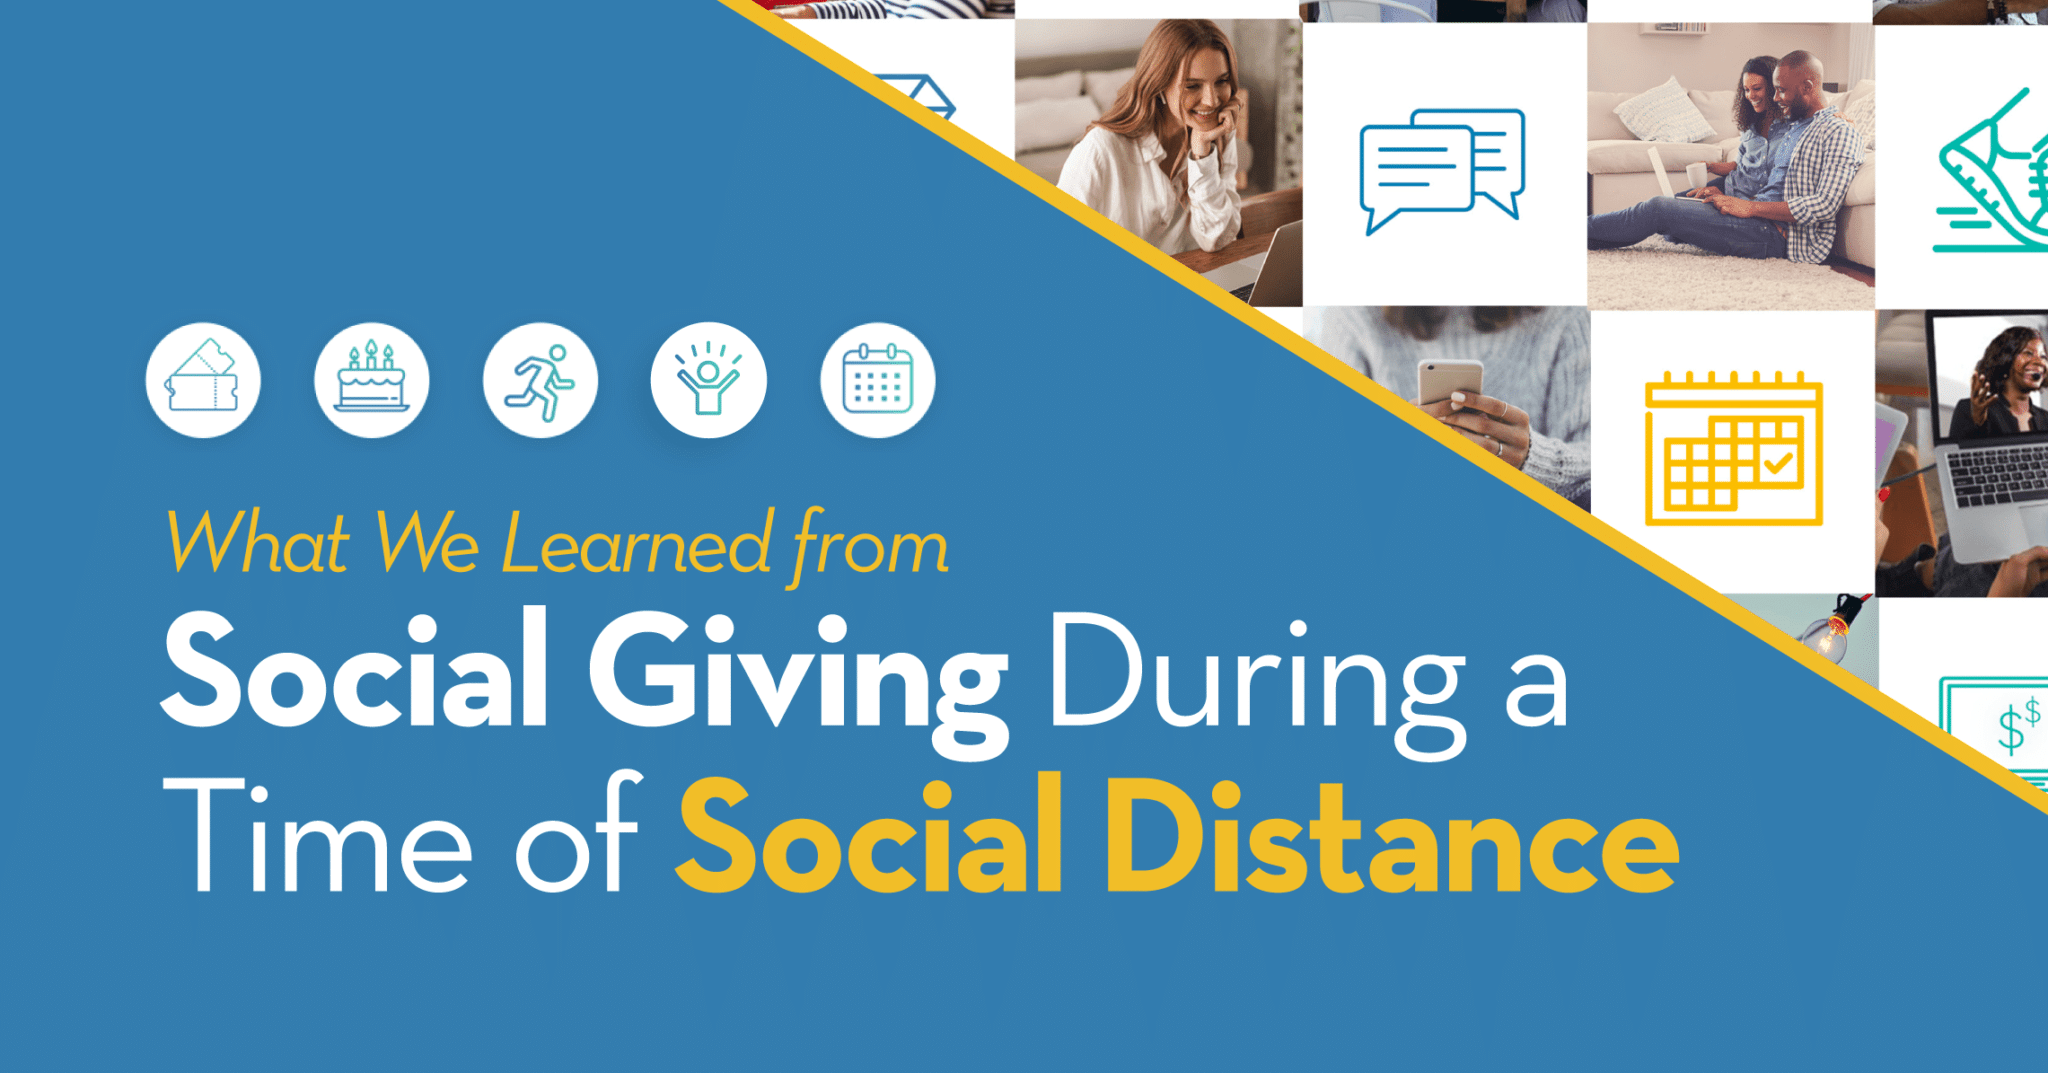 Social giving in a time of social distancing